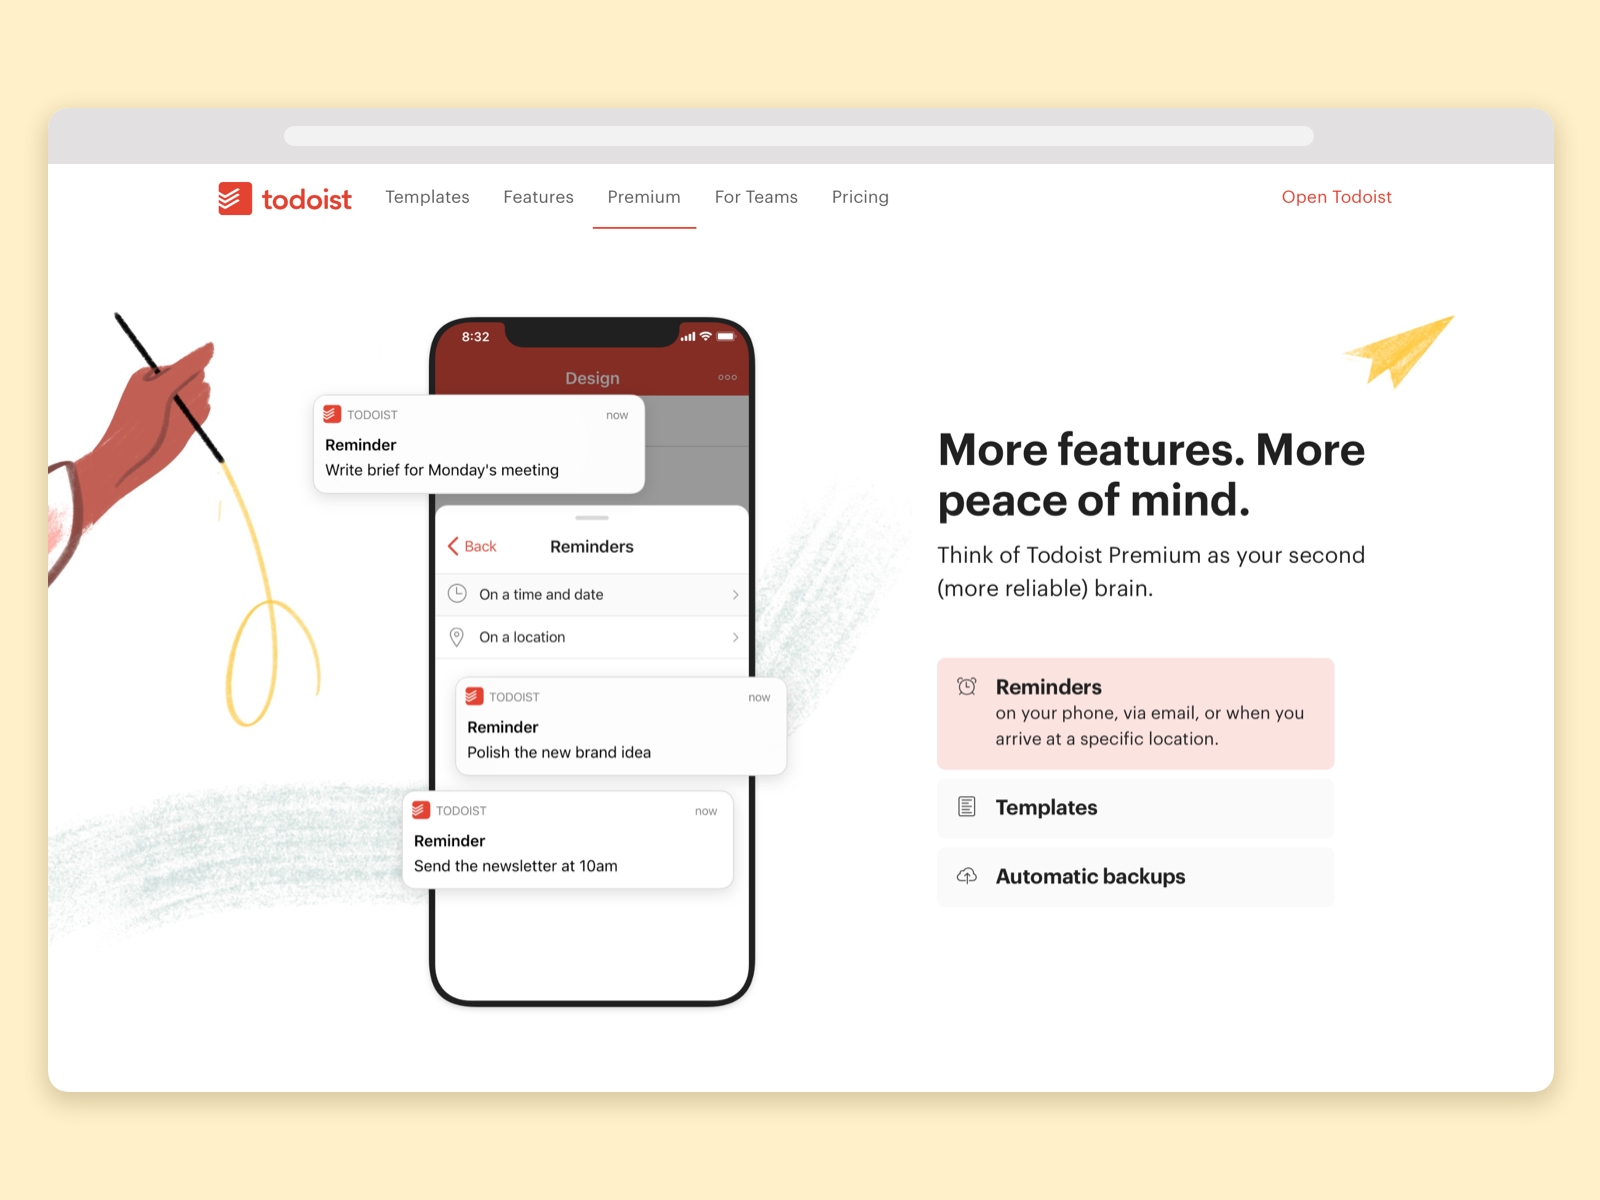 Todoist Foundations Landingpage Premium Details By Wallace Chao For Doist On Dribbble